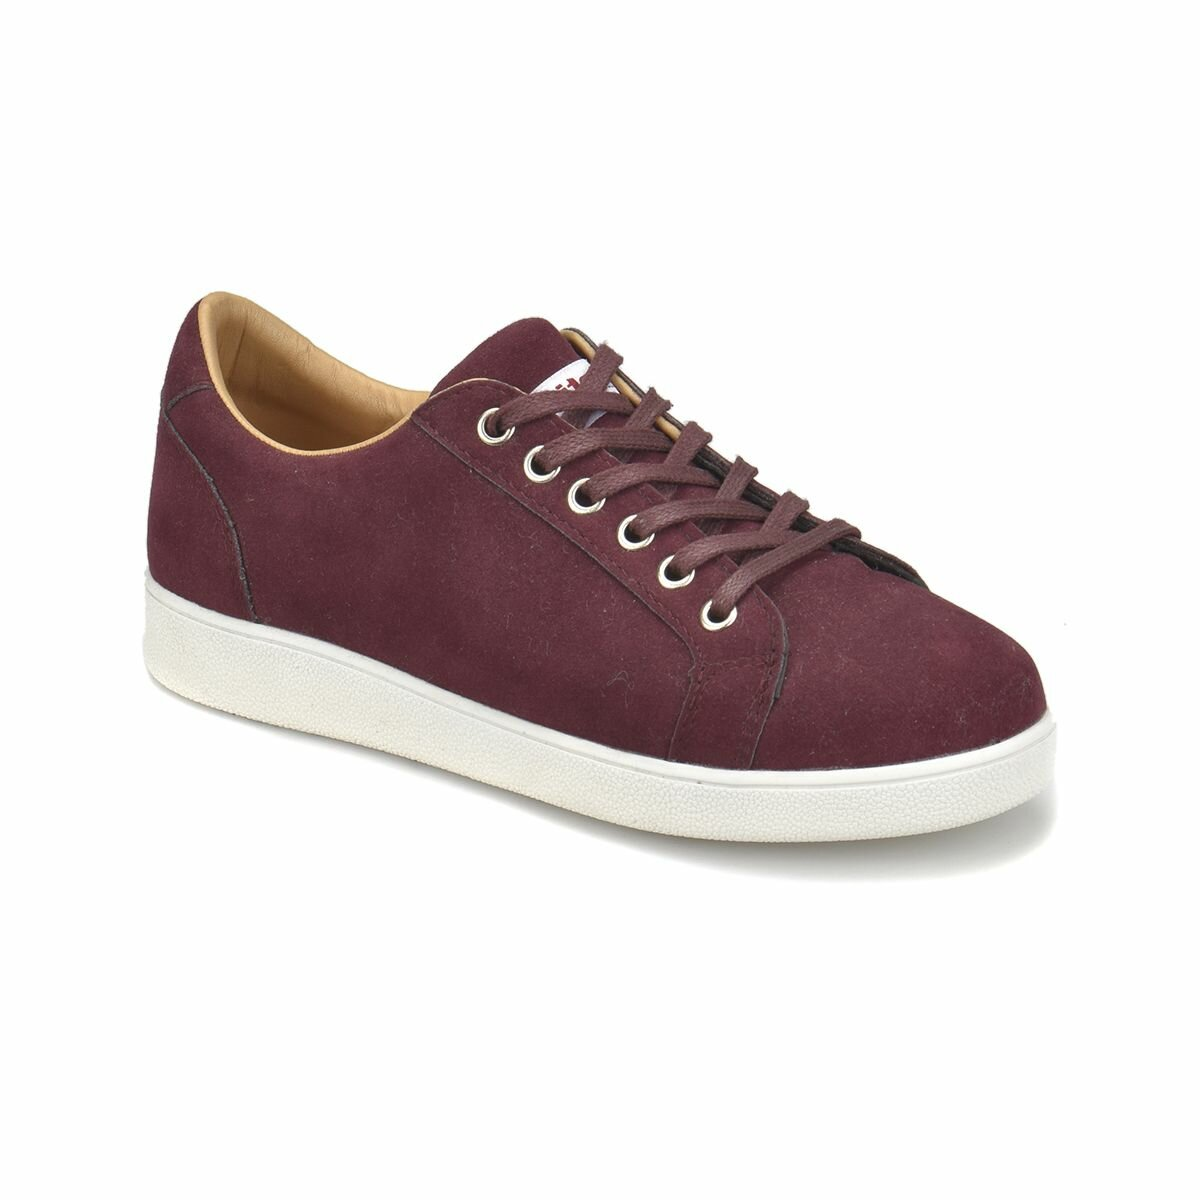 FLO MAYA Burgundy Women 'S Shoes KINETIX